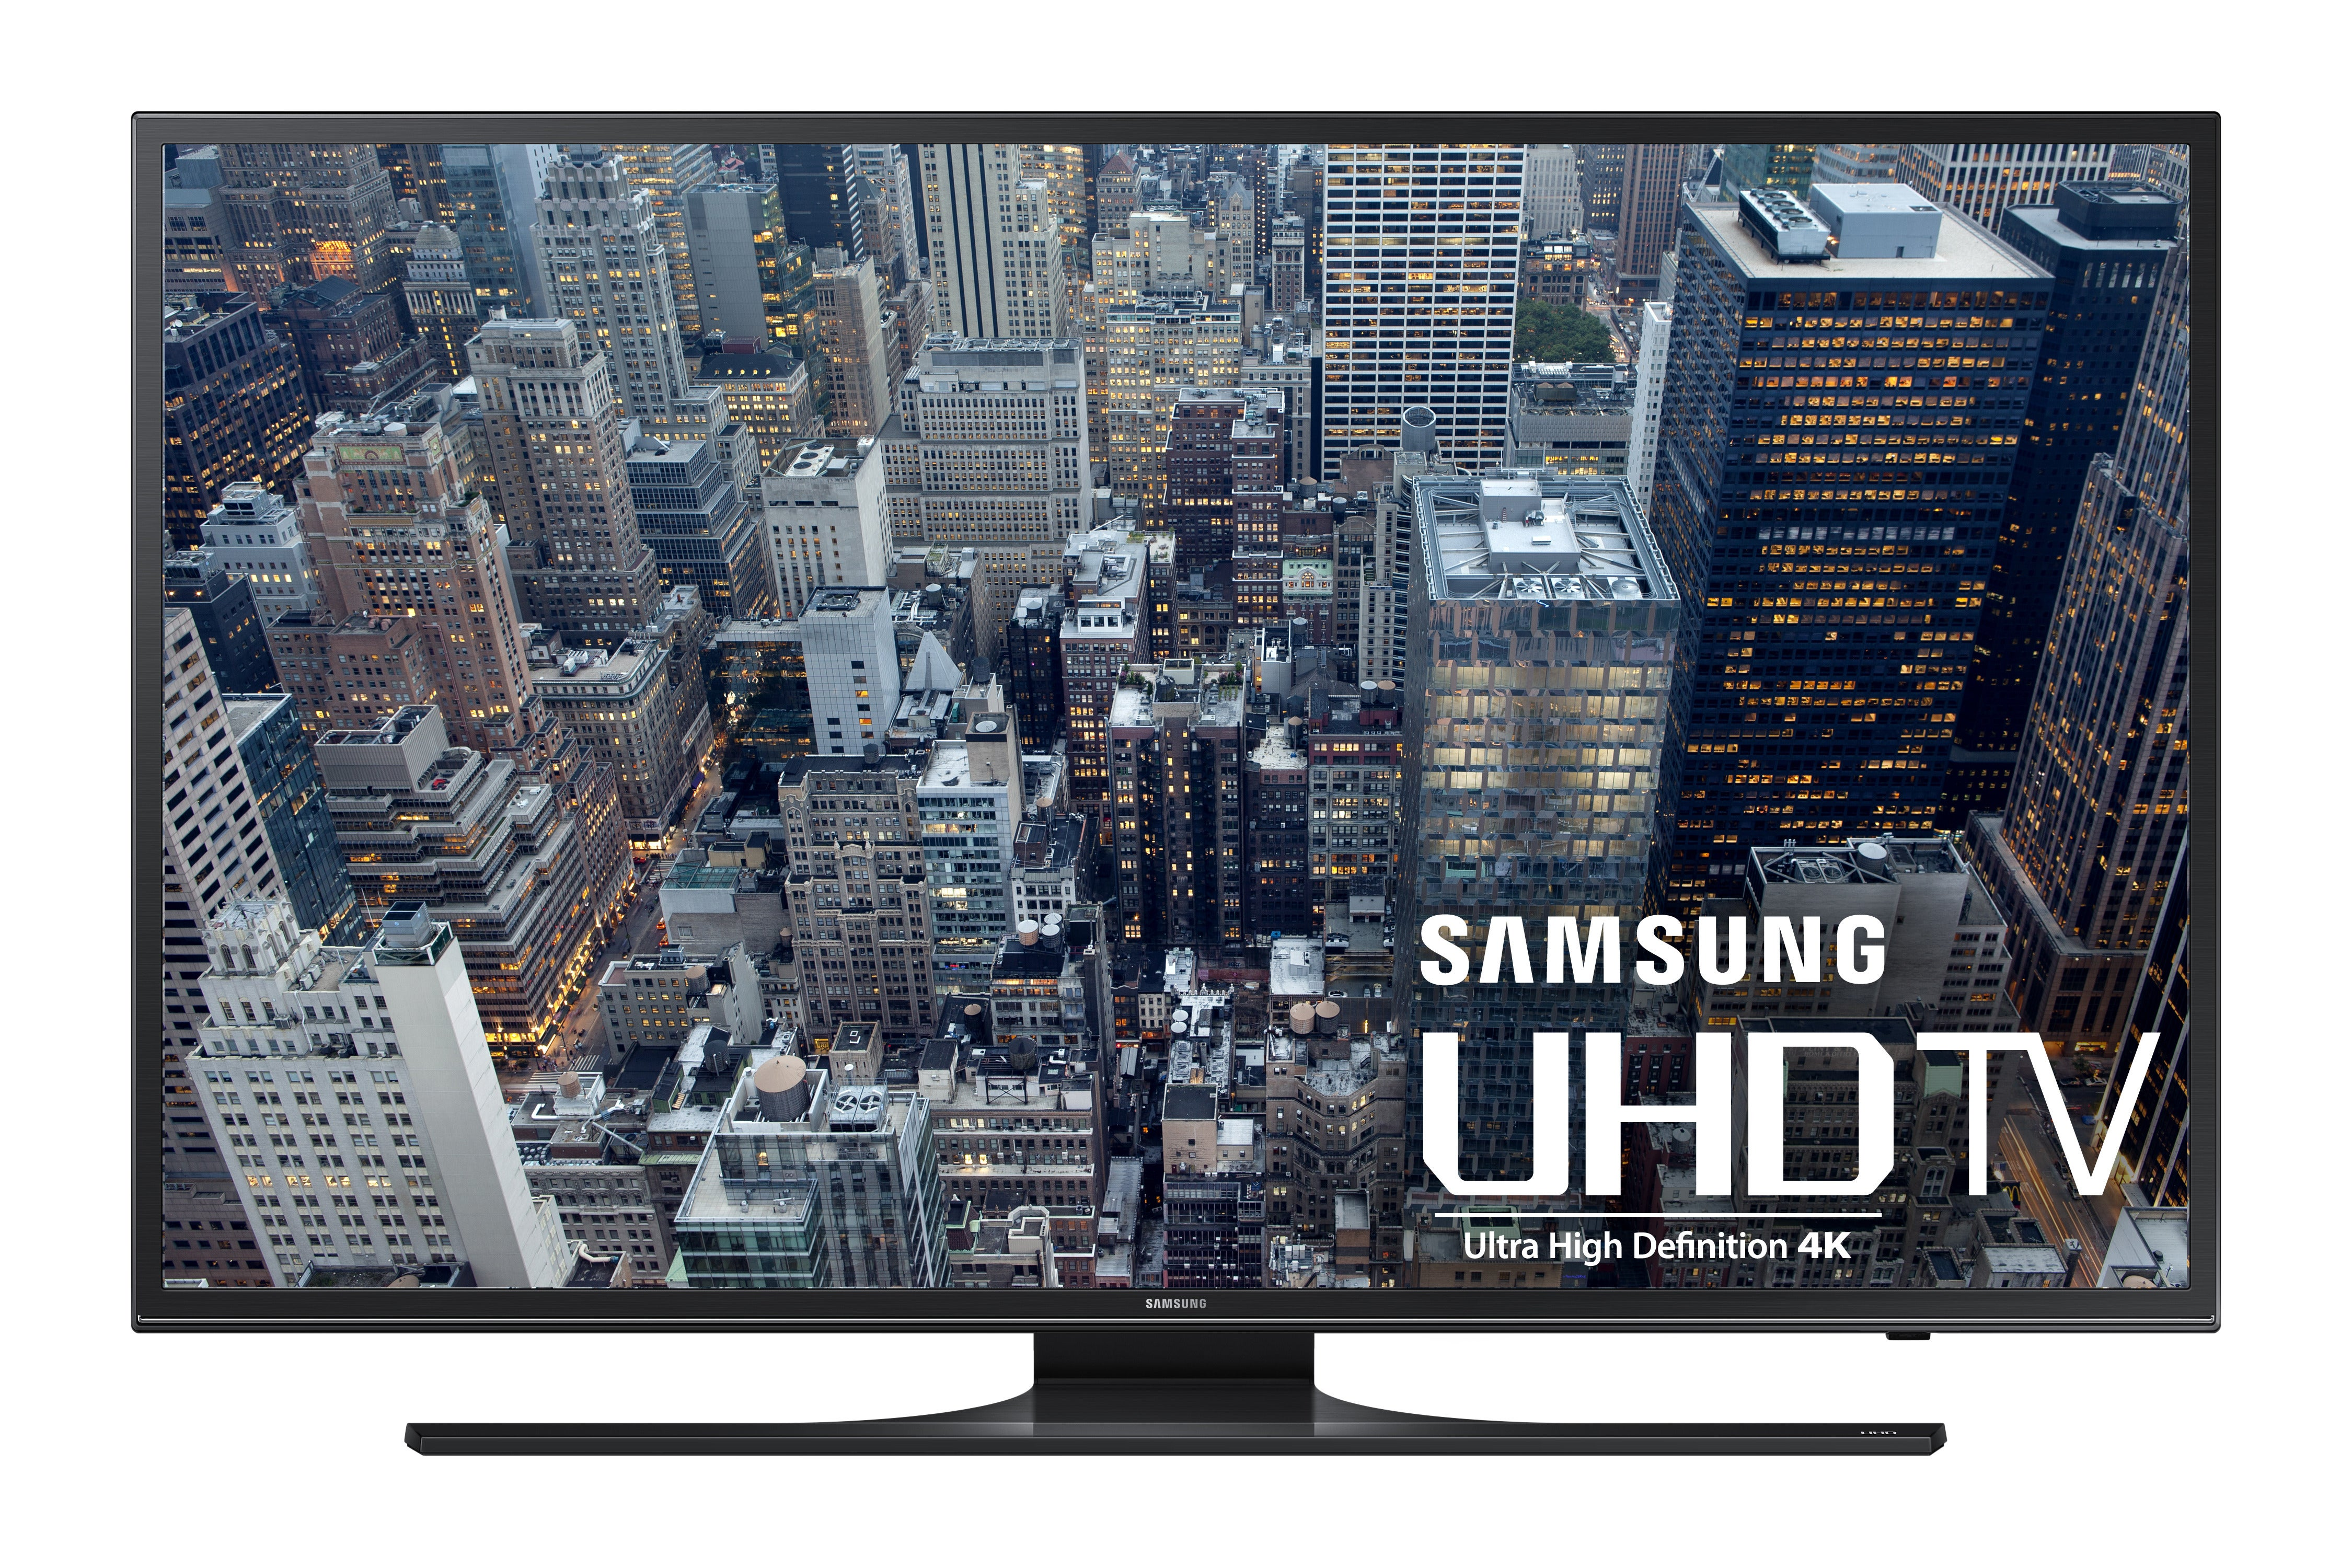 621e265abc11f Samsung UN55JU6500 4K LCD smart TV review  Simple and affordable ...